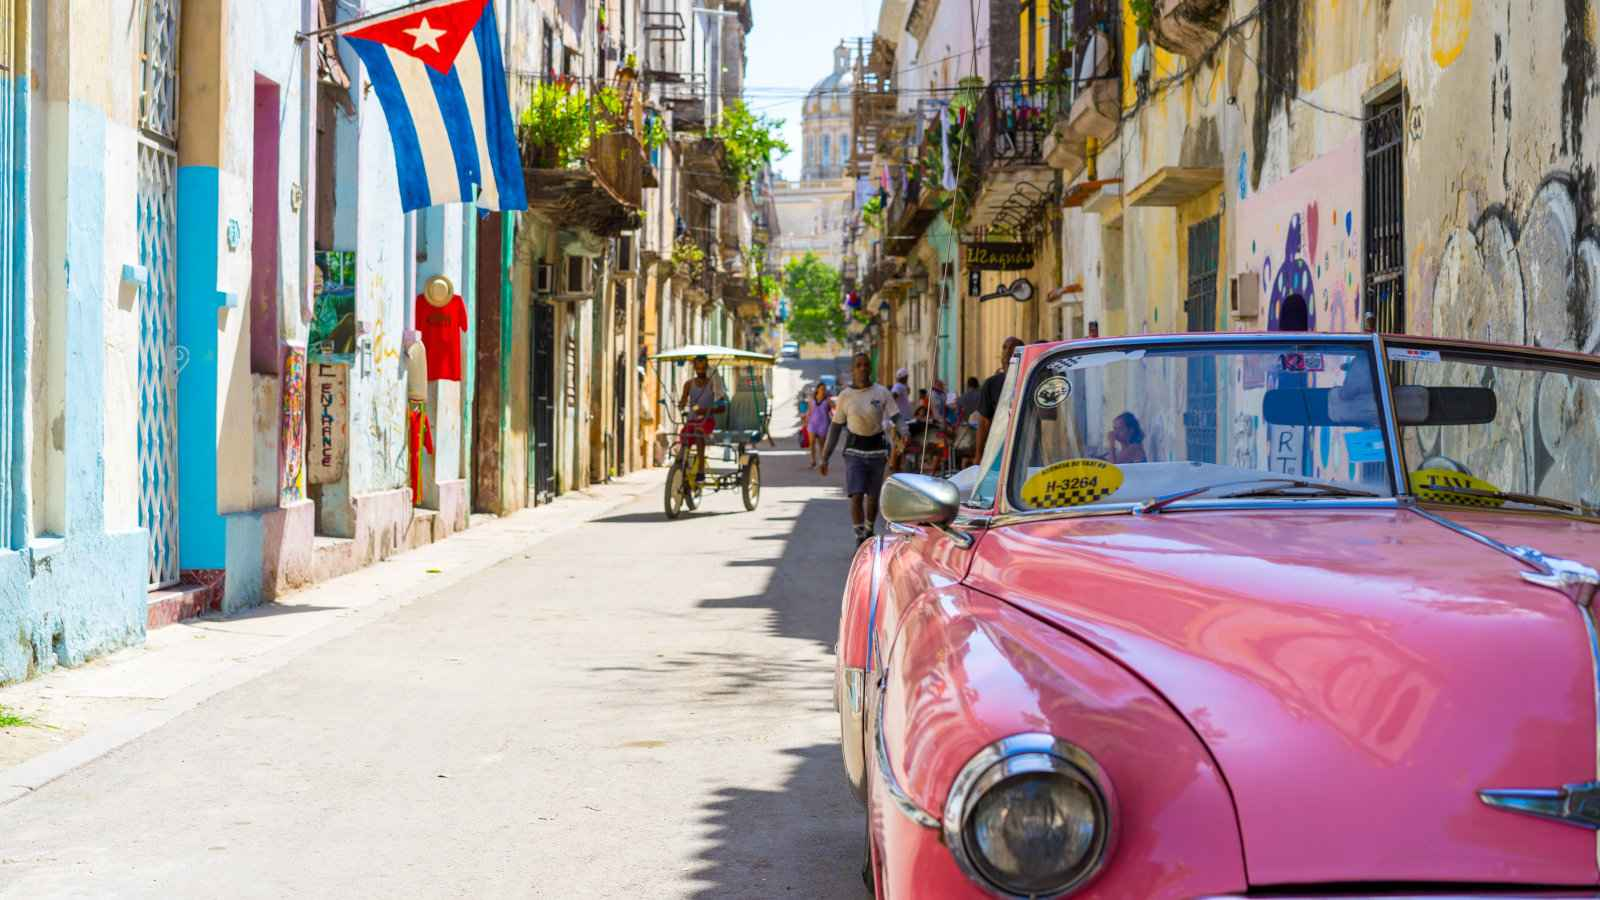 Cuba has become a very gay friendly destination, largely thanks to LGBTQ rights activist Mariela Castro